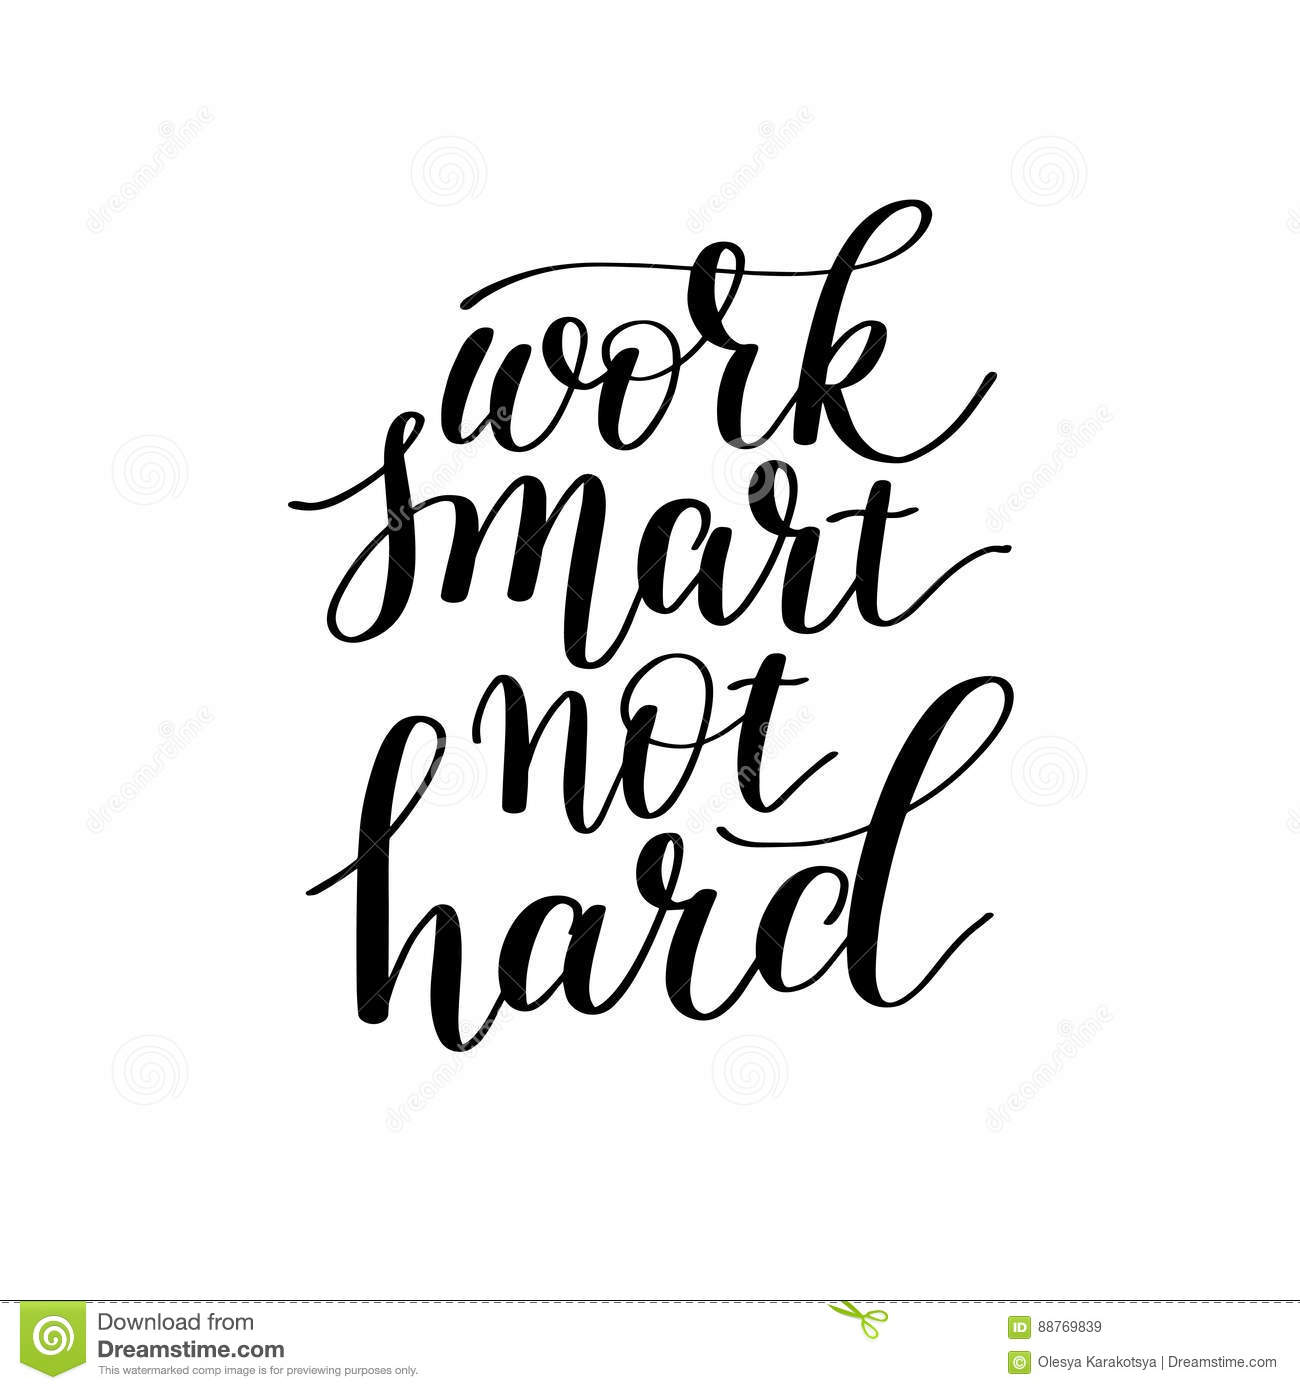 Work Smarter Not Harder Quote: Work Smart Not Hard Hand Lettering About Optimization And